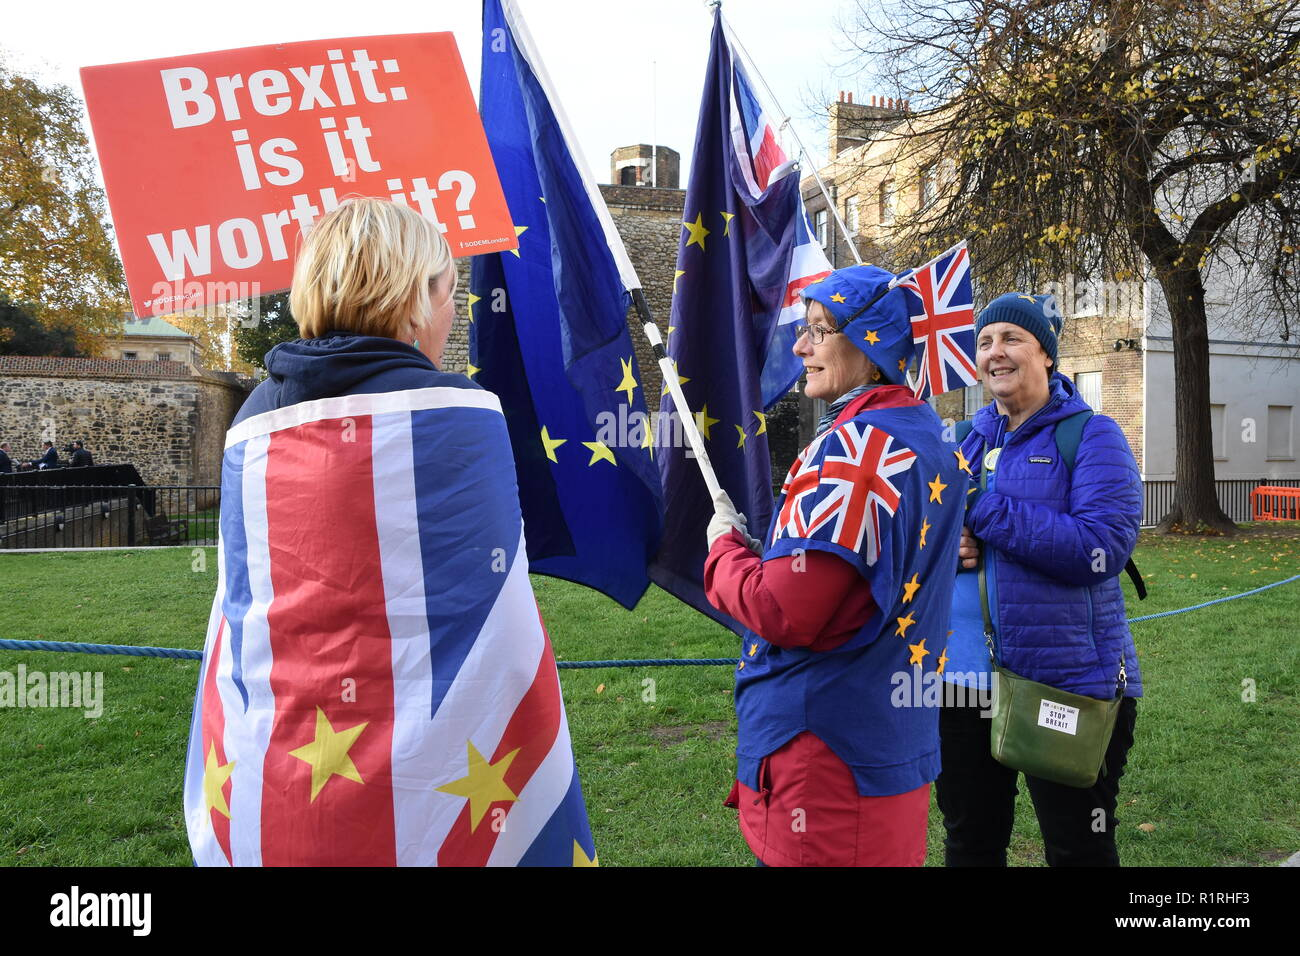 London, UK. 14th November, 2018. Members of the Stand of Defiance European Movement continued their Anti Brexit Protest on the day that Theresa May sought cabinet backing for her Brexit plan.College Green,Houses of Parliament,London.UK Credit: michael melia/Alamy Live News - Stock Image